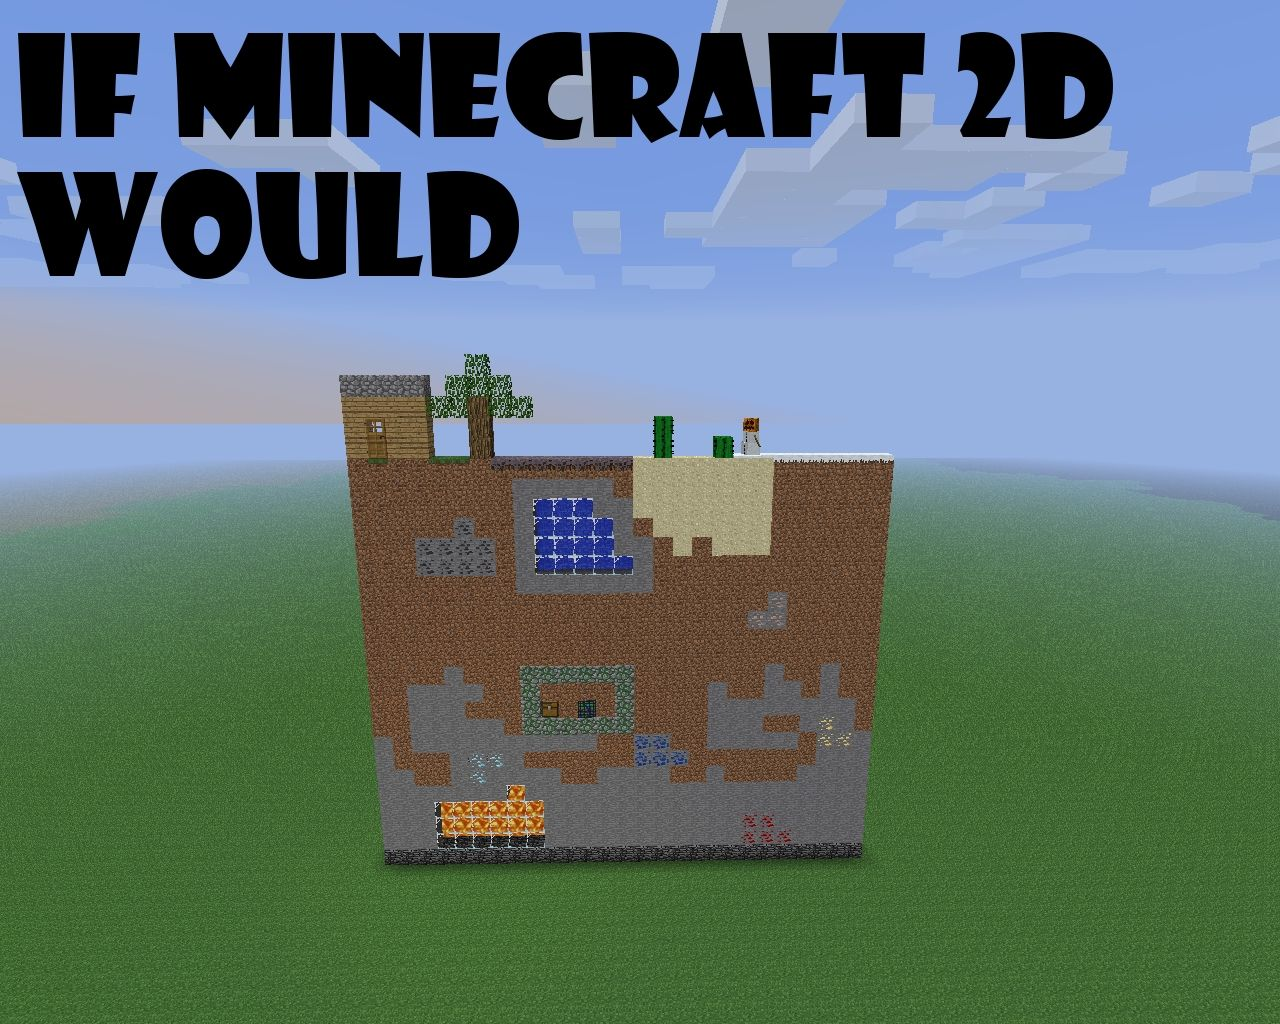 Crafted - 2d minecraft for iphone and ipod - 6d